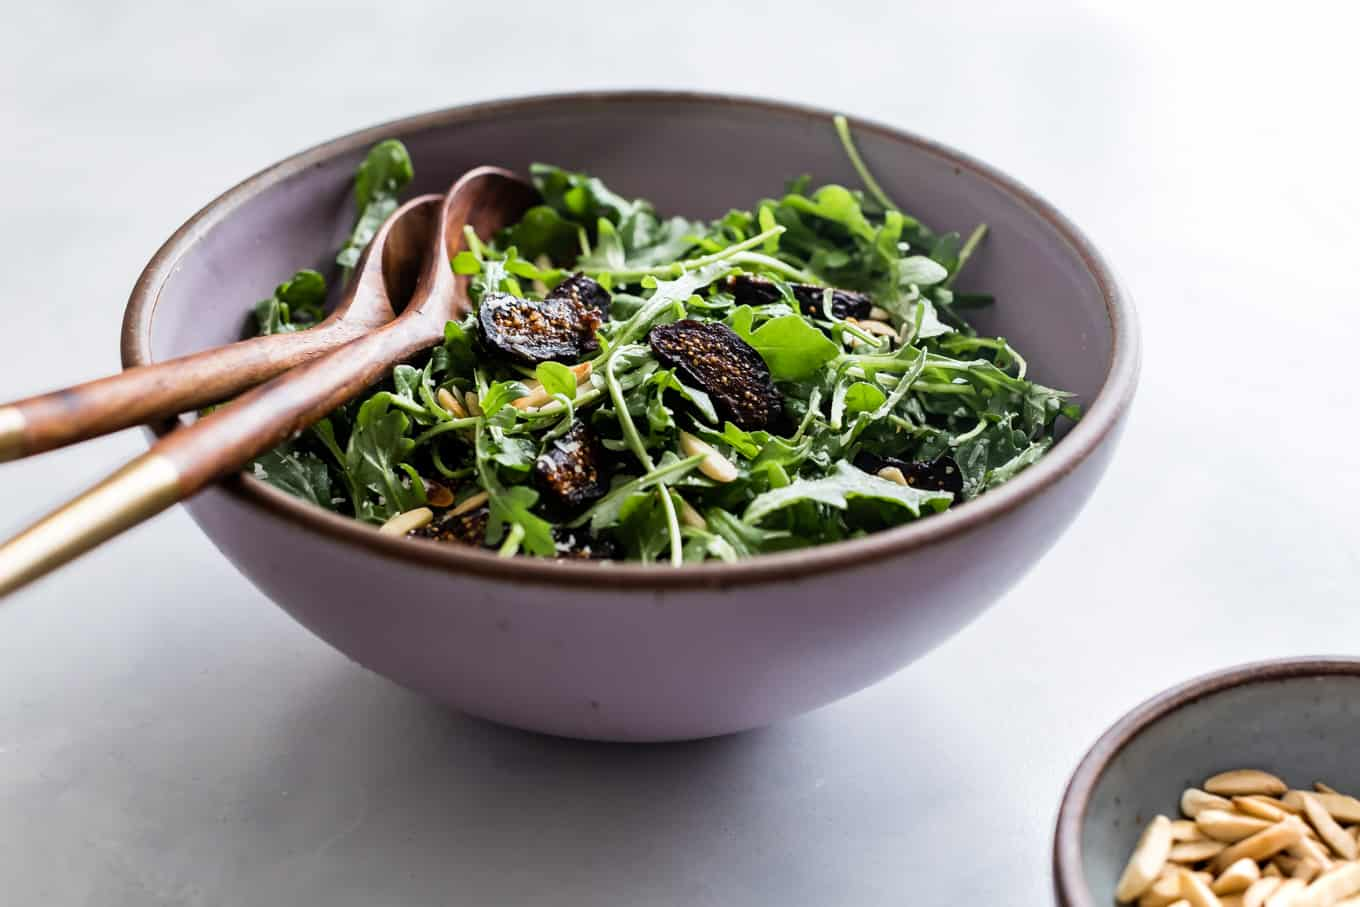 Easy Salad Recipe with Arugula and Figs